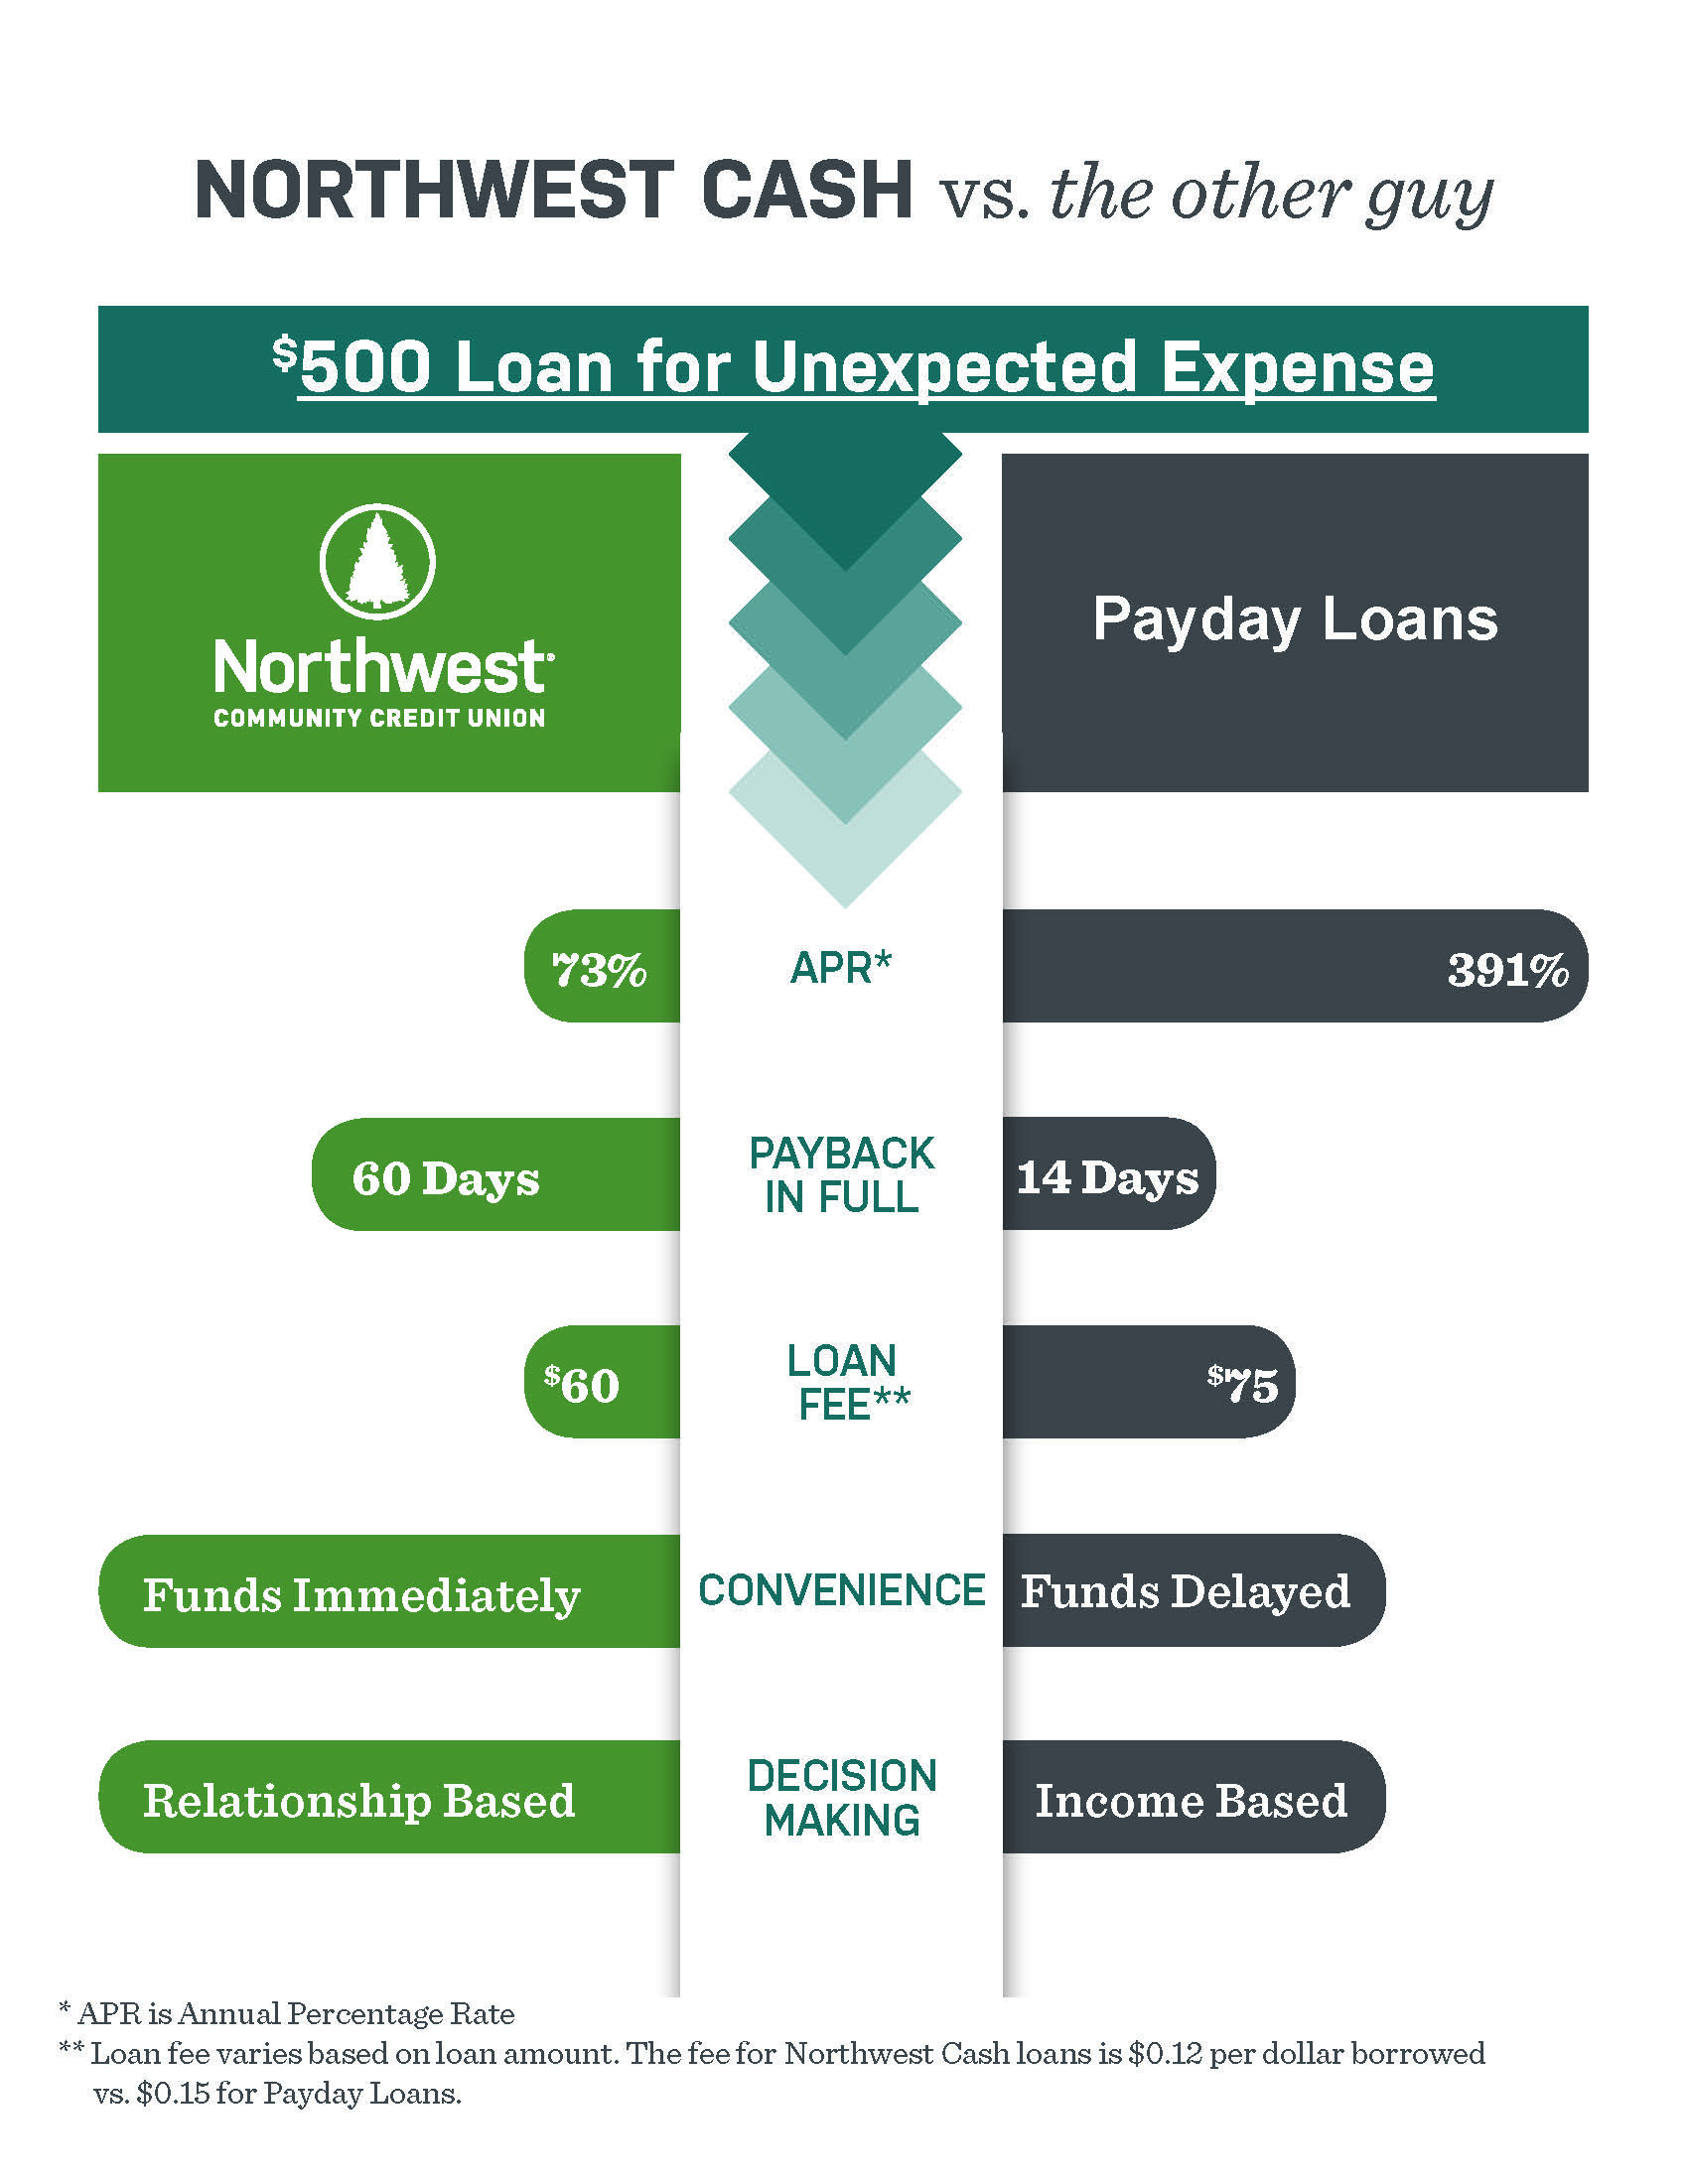 Northwest Cash loan versus Payday loan